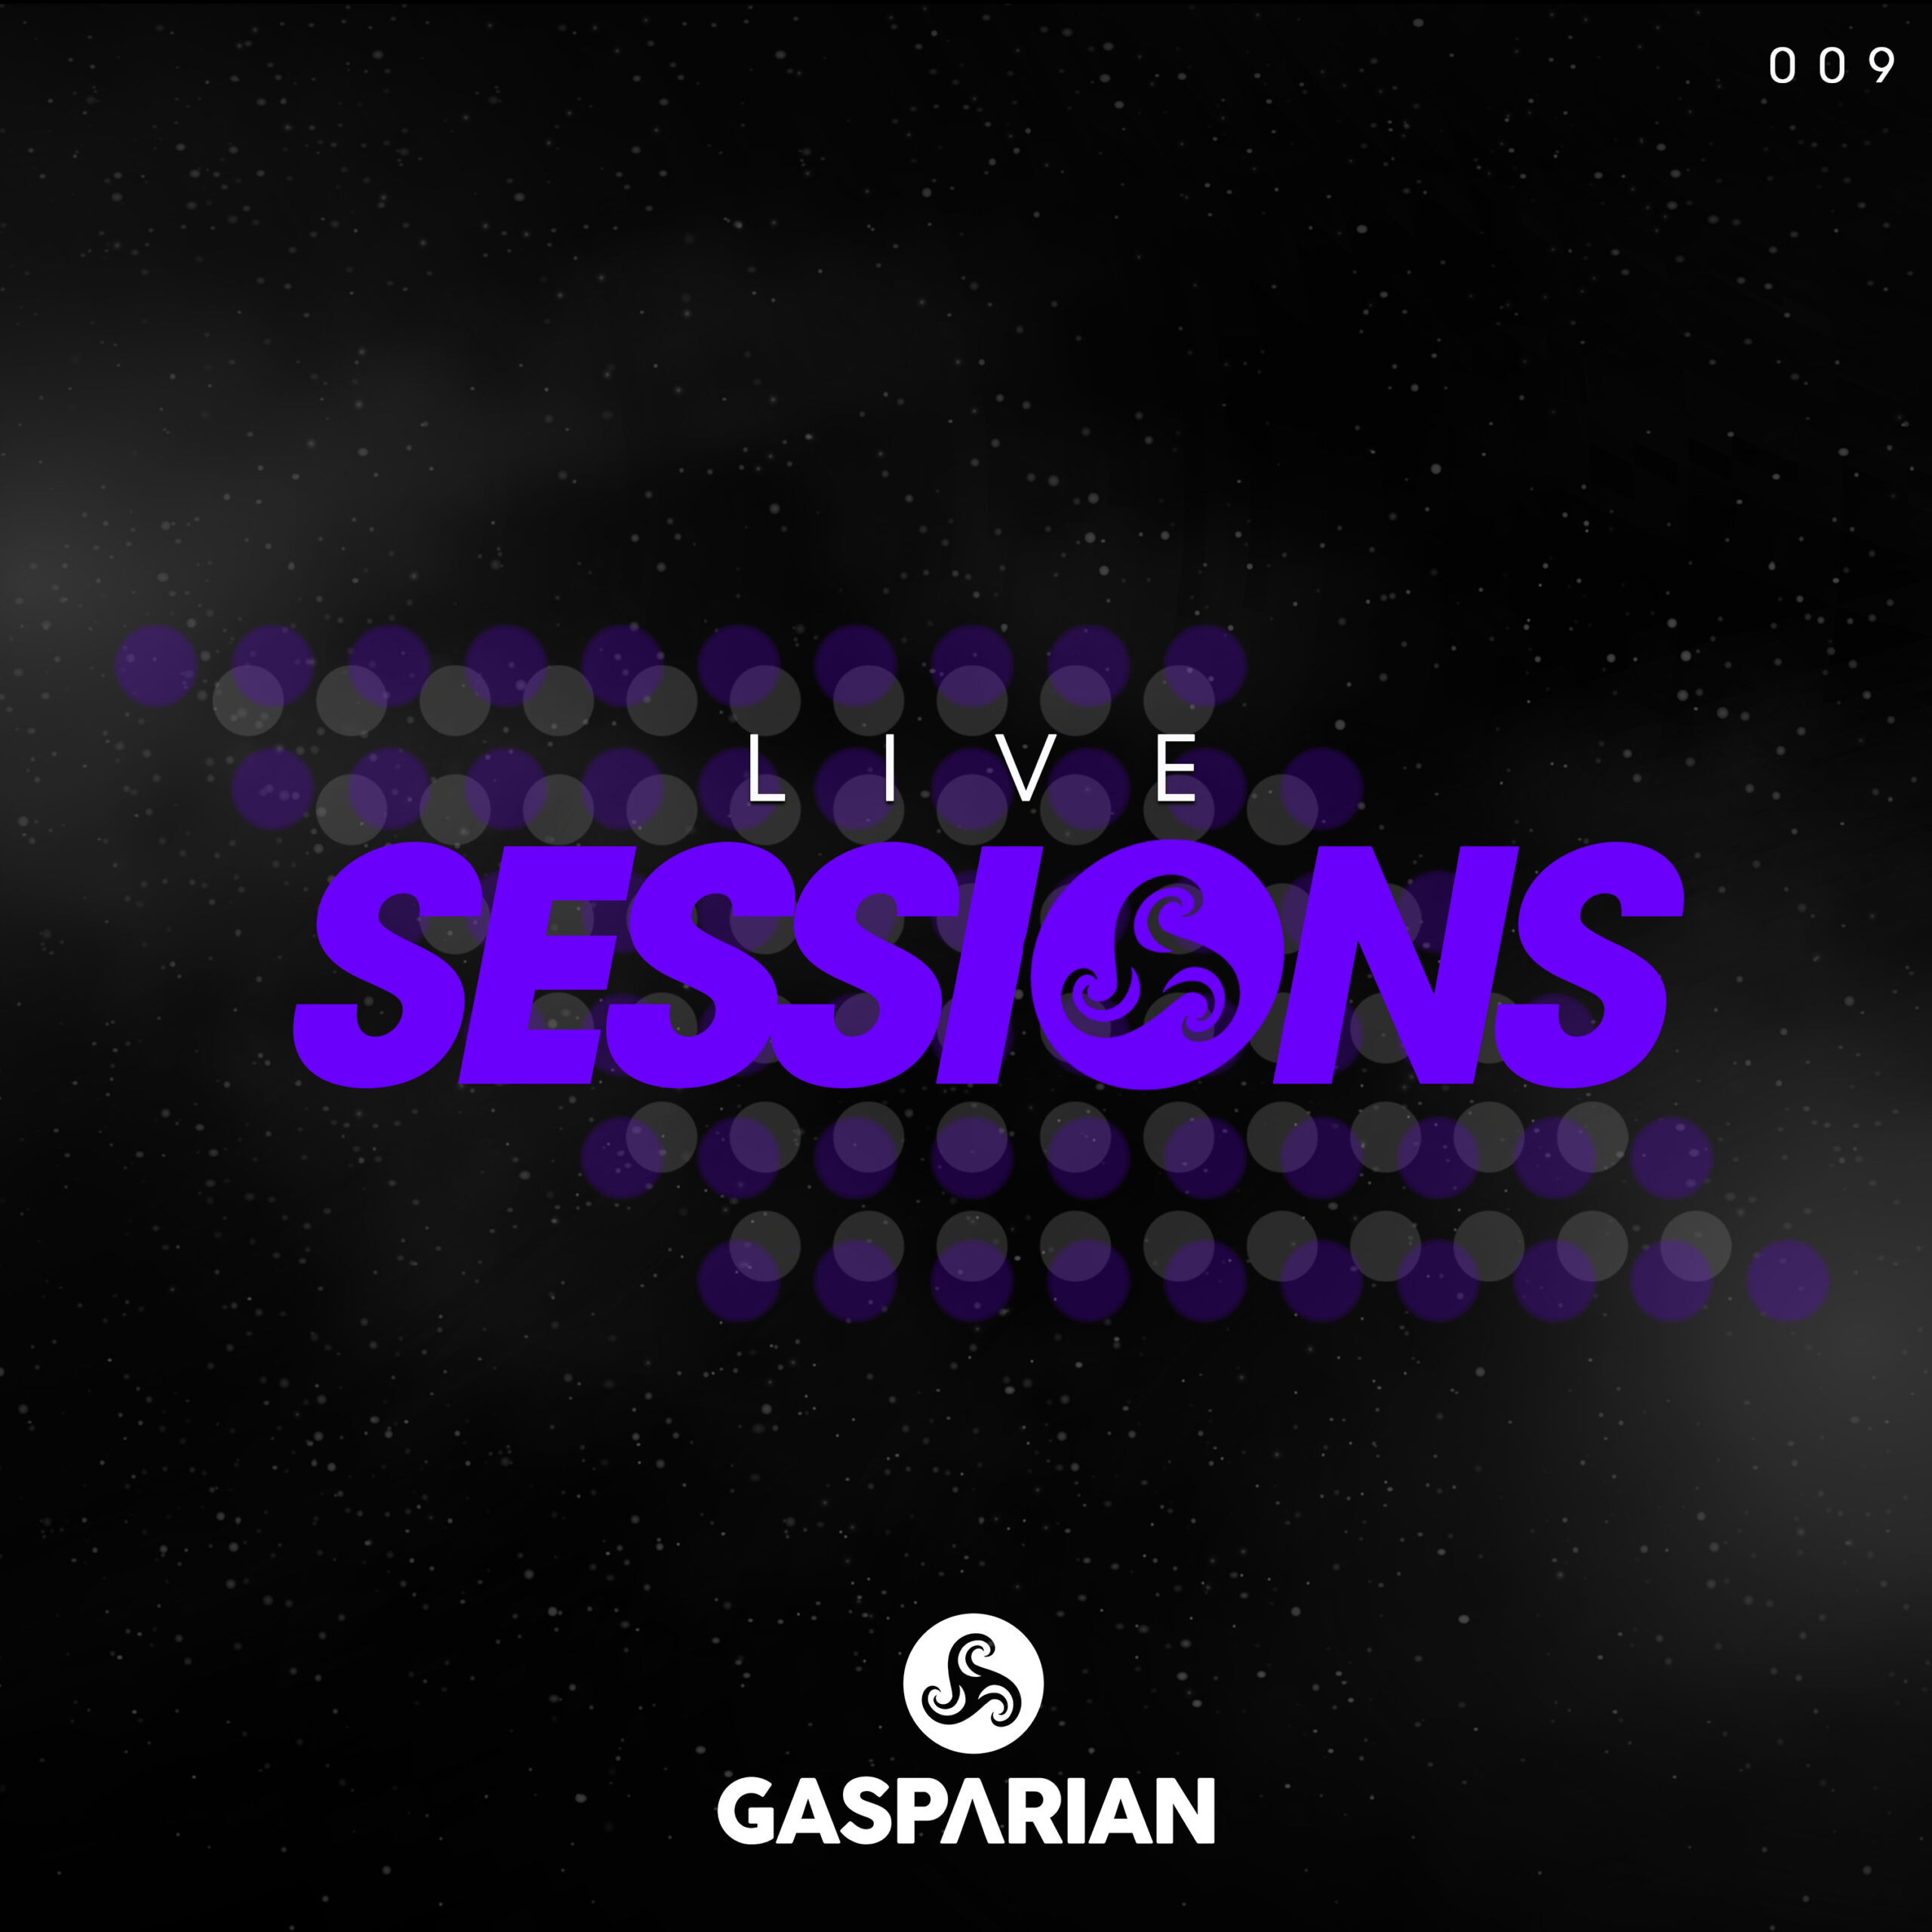 @Gasparian Live Sessions 009